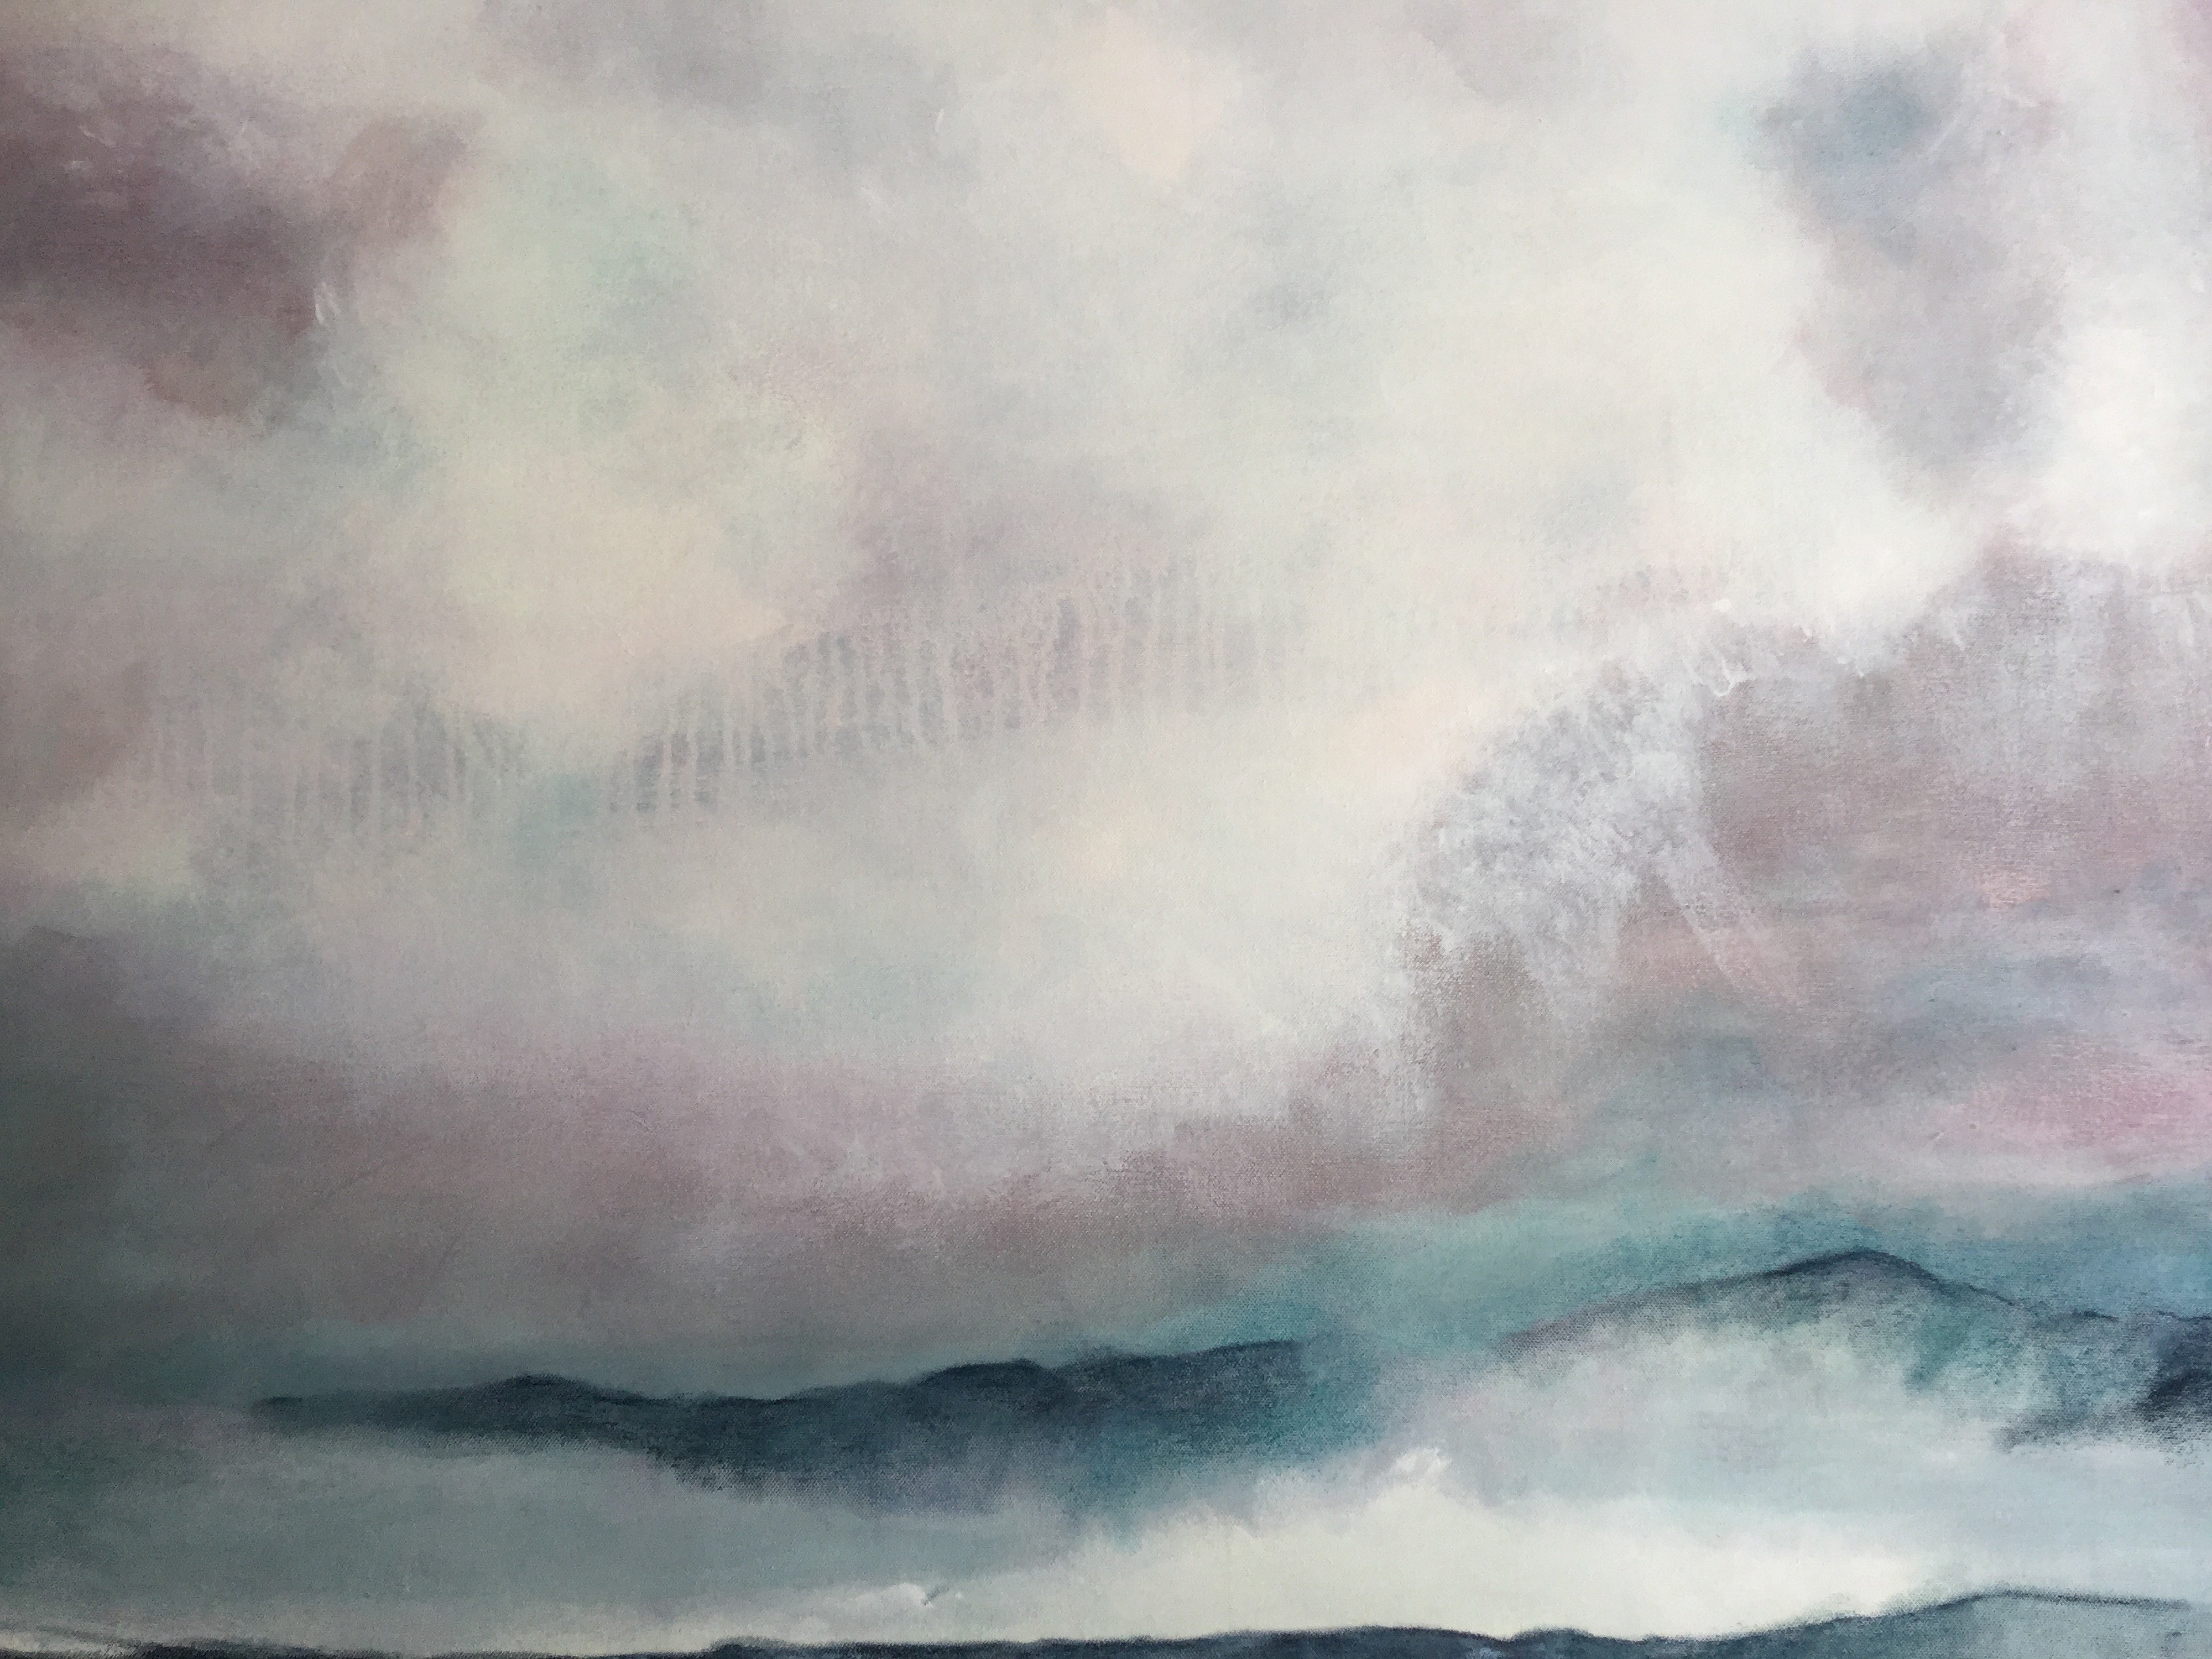 Clouds and Sea by Barb Hinnenkamp | ArtworkNetwork.com